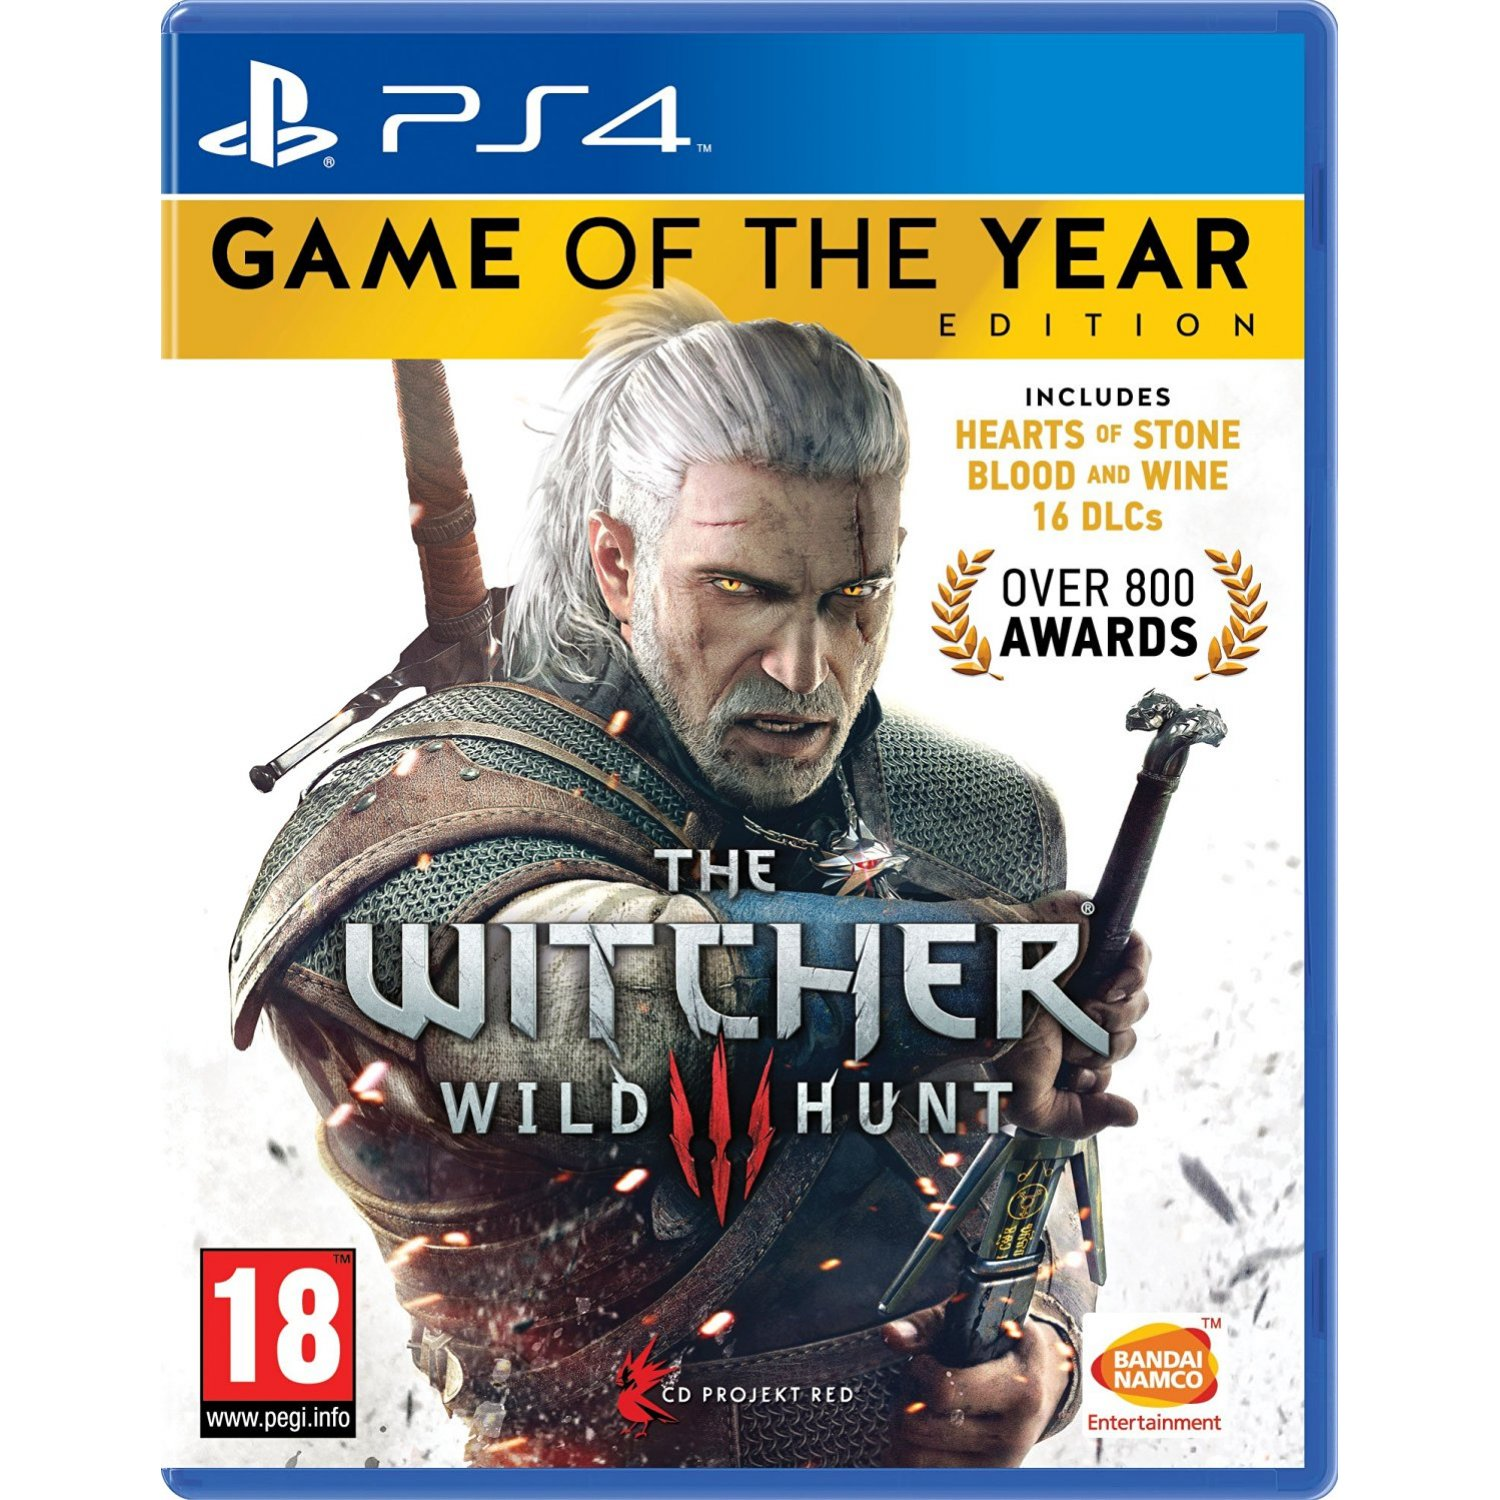 PS4 : The Witcher 3 Wild Hunt Game of the Year Edition (R3)